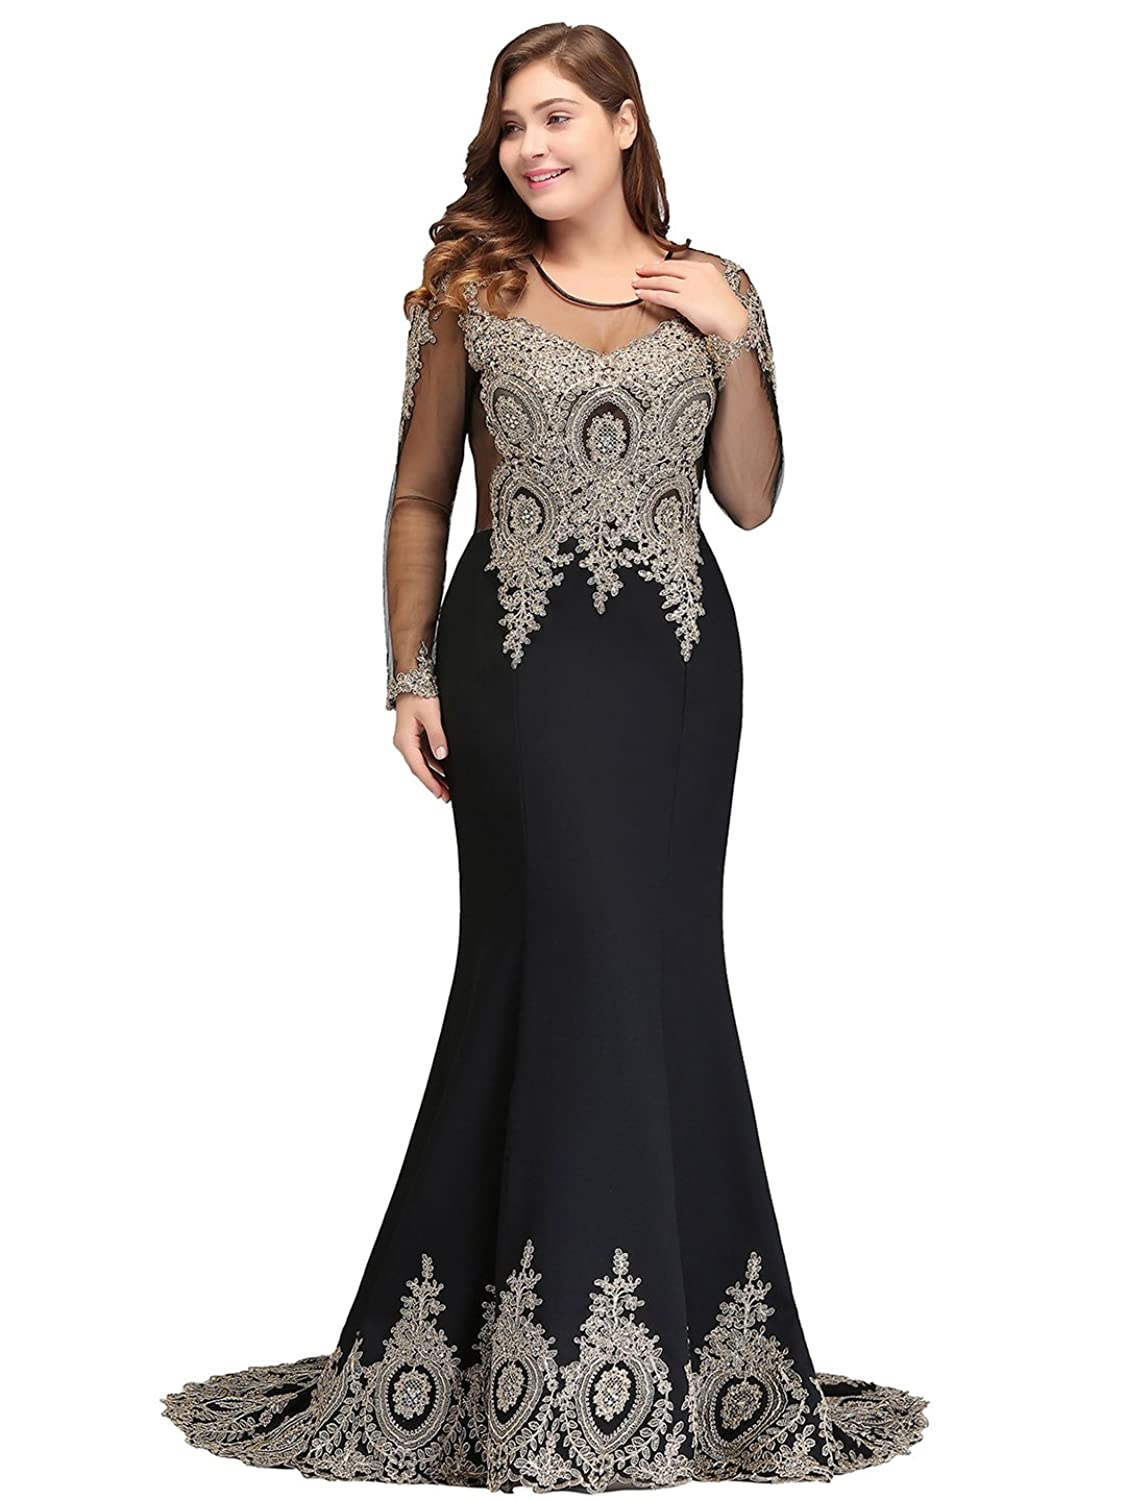 866c7419d2dd2 ... Formal Evening Dresses for Women. Wholesale Price:93.99. Fabric:  elastic lycra crepe with gold lace appliques, shining crystals; Plus size  16, 18W, 20W, ...